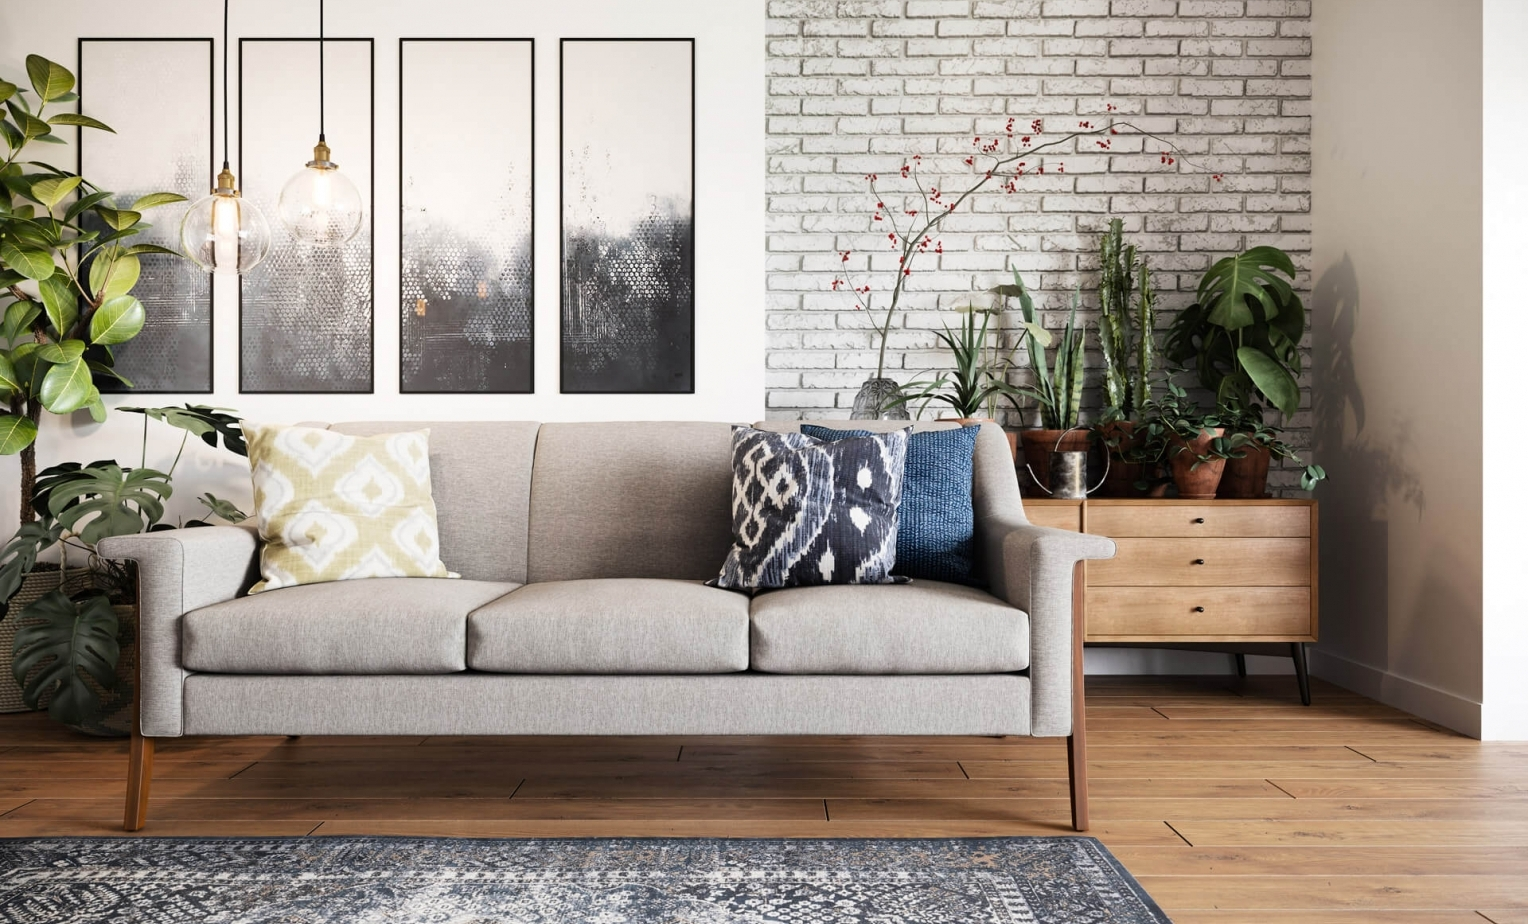 Photorealistic 3D Rendering for a Real Estate Interior